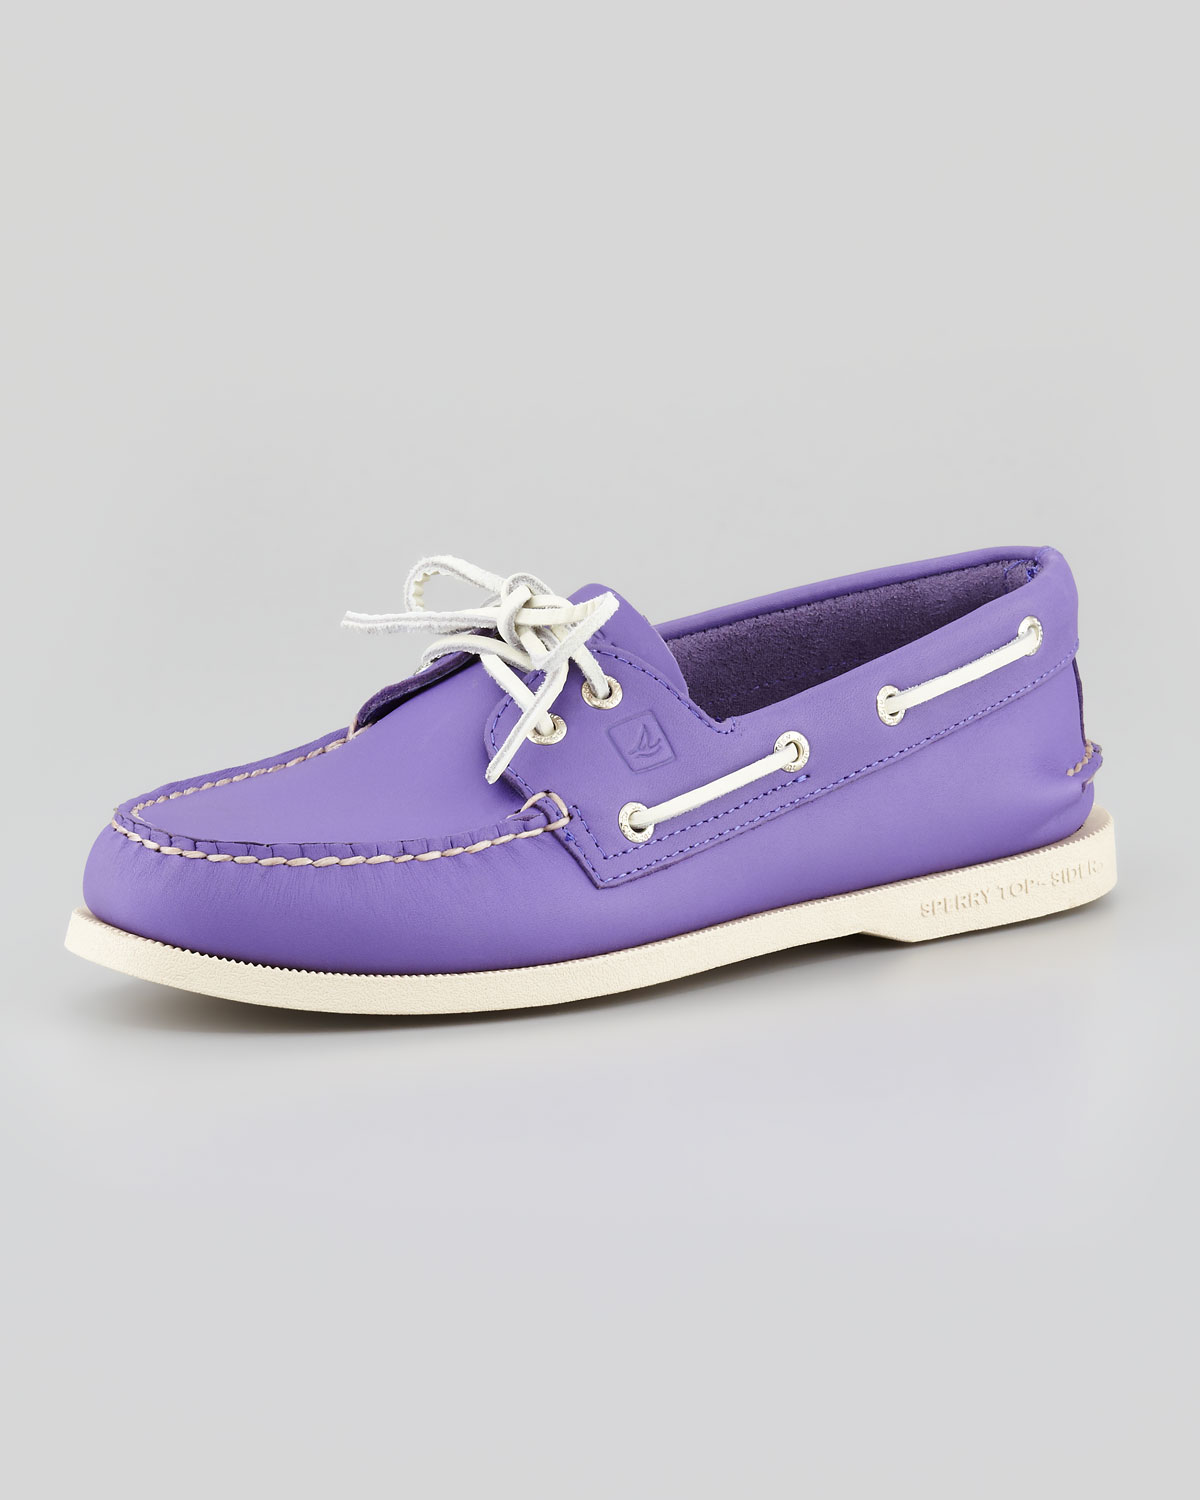 Sperry topsiders fashion style 49